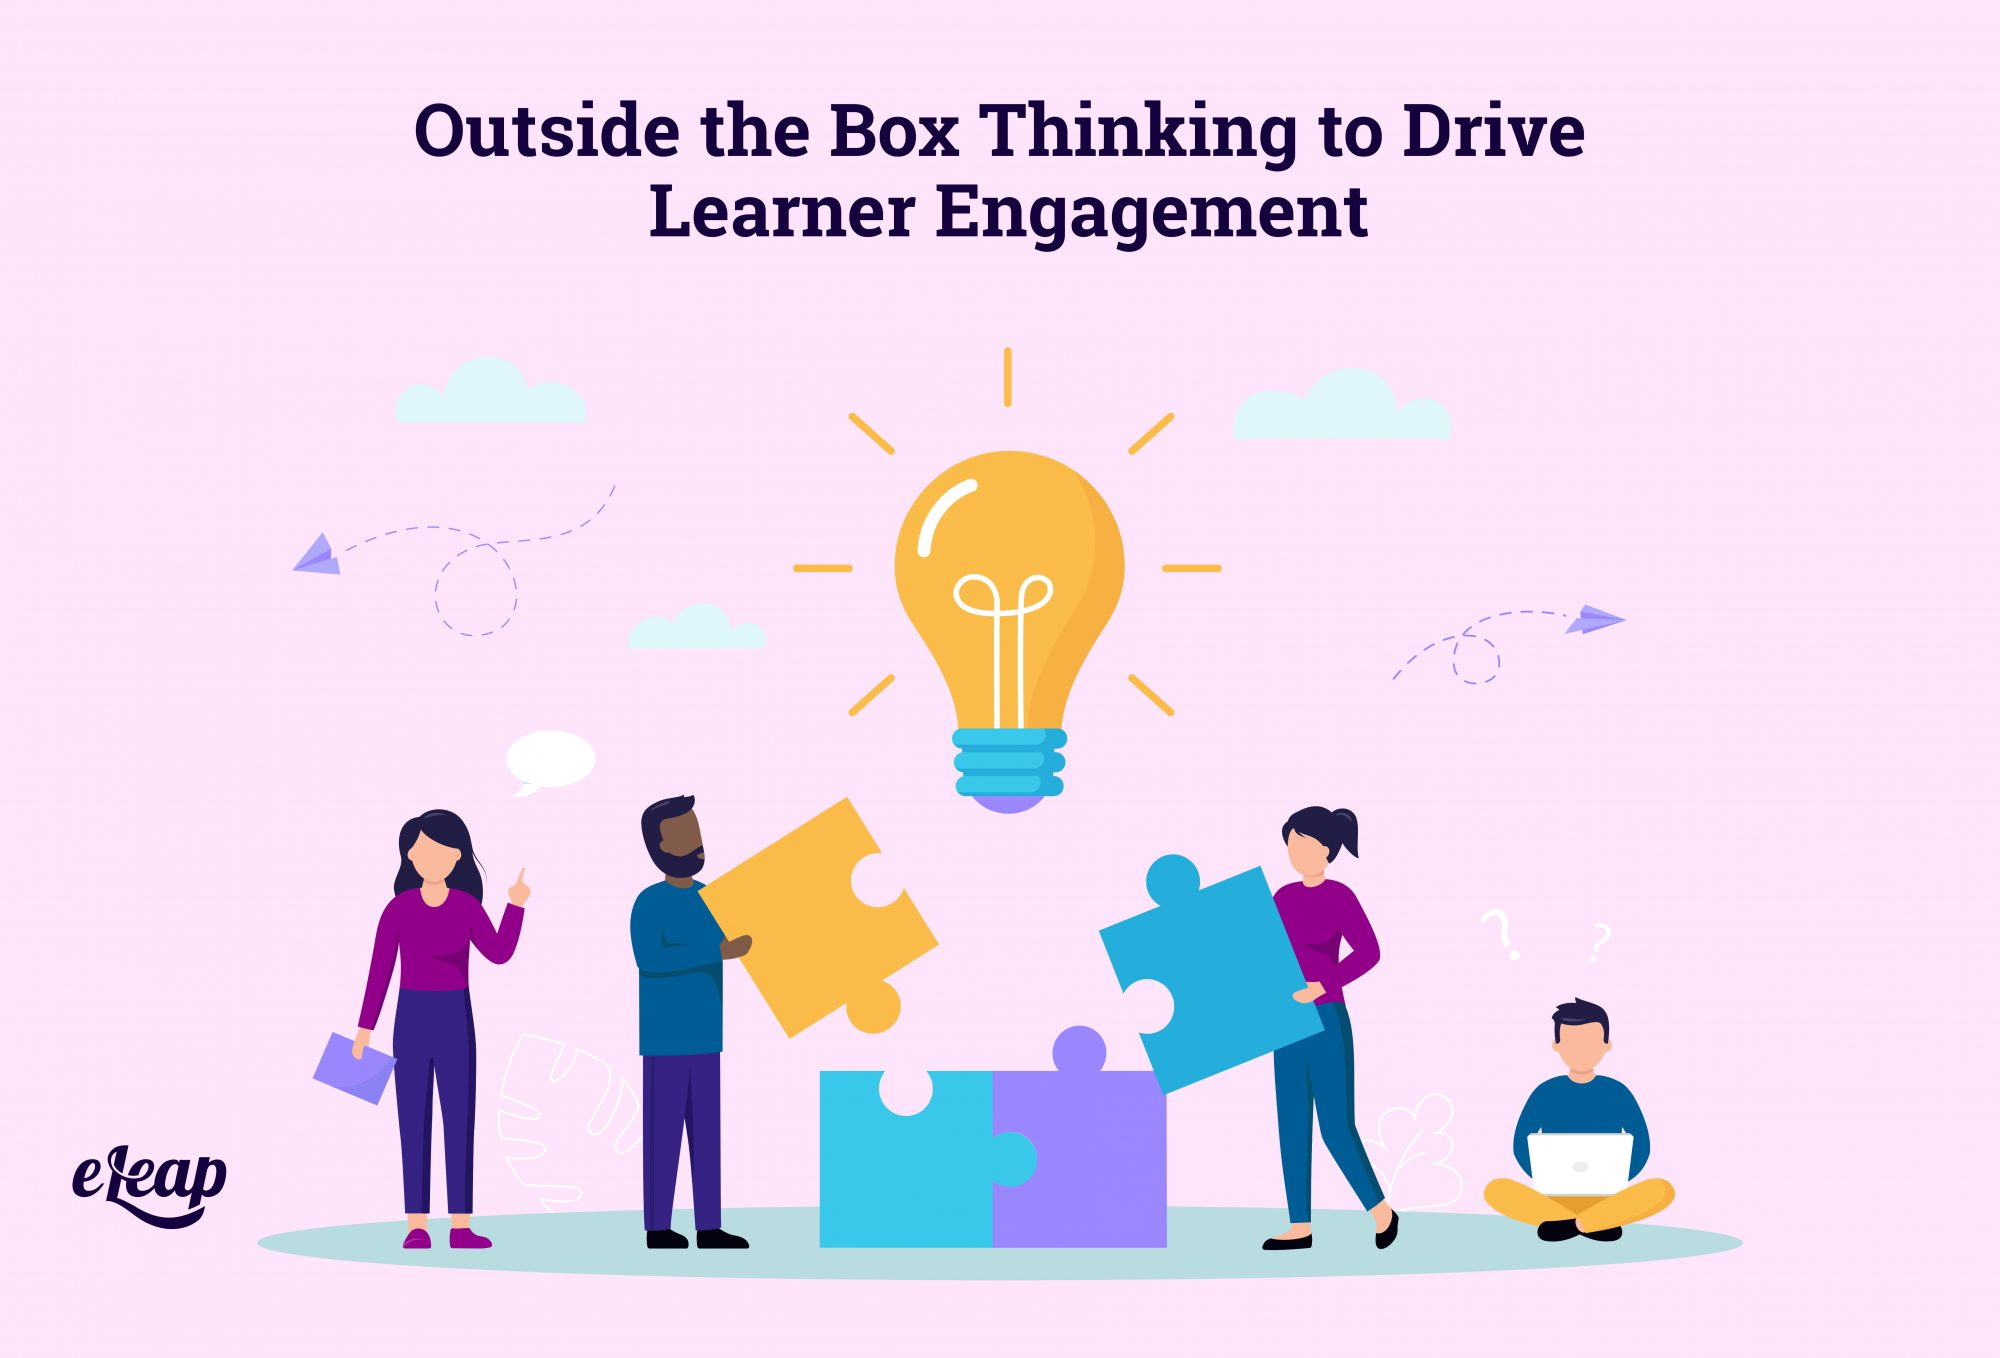 Outside the Box Thinking to Drive Learner Engagement